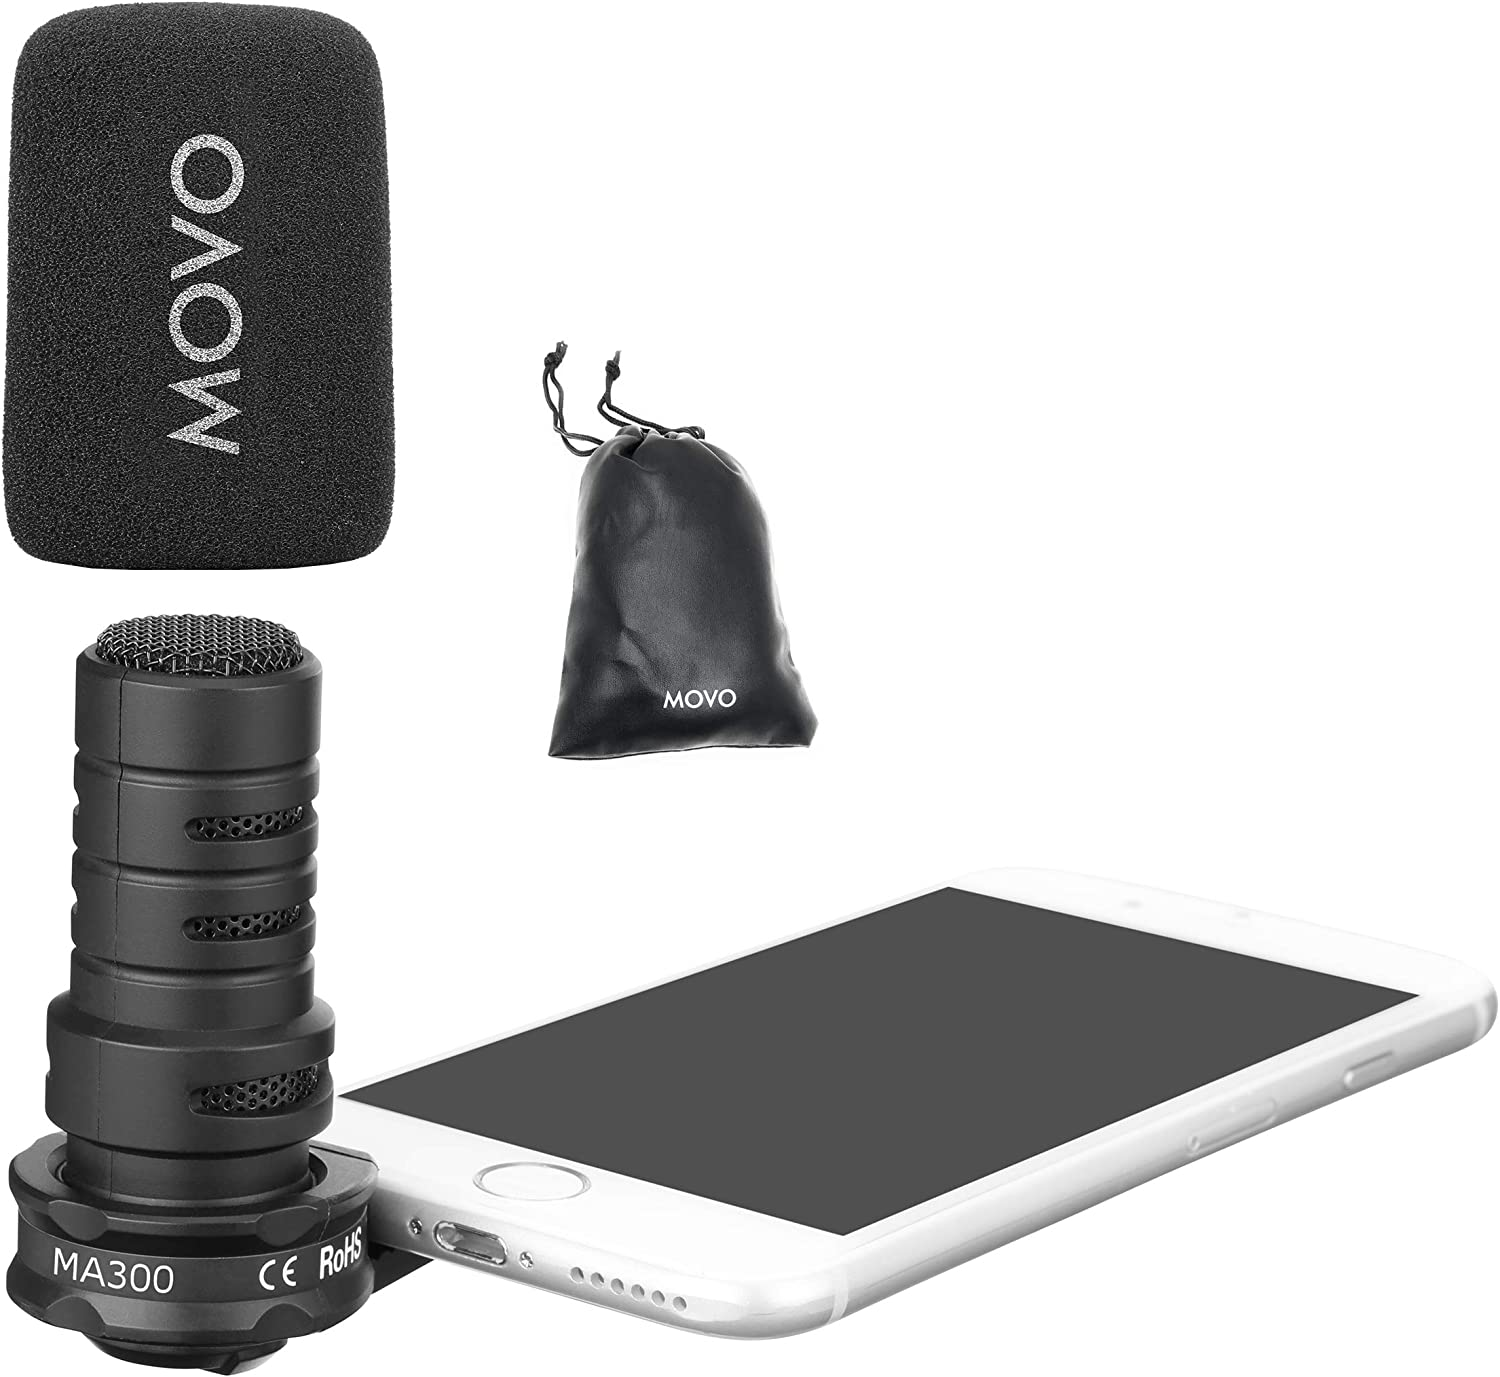 Andorid Smartphones and Tablets with a 3.5mm Input Jack Movo MA300 Compact Smartphone Microphone Compatible with iPhone